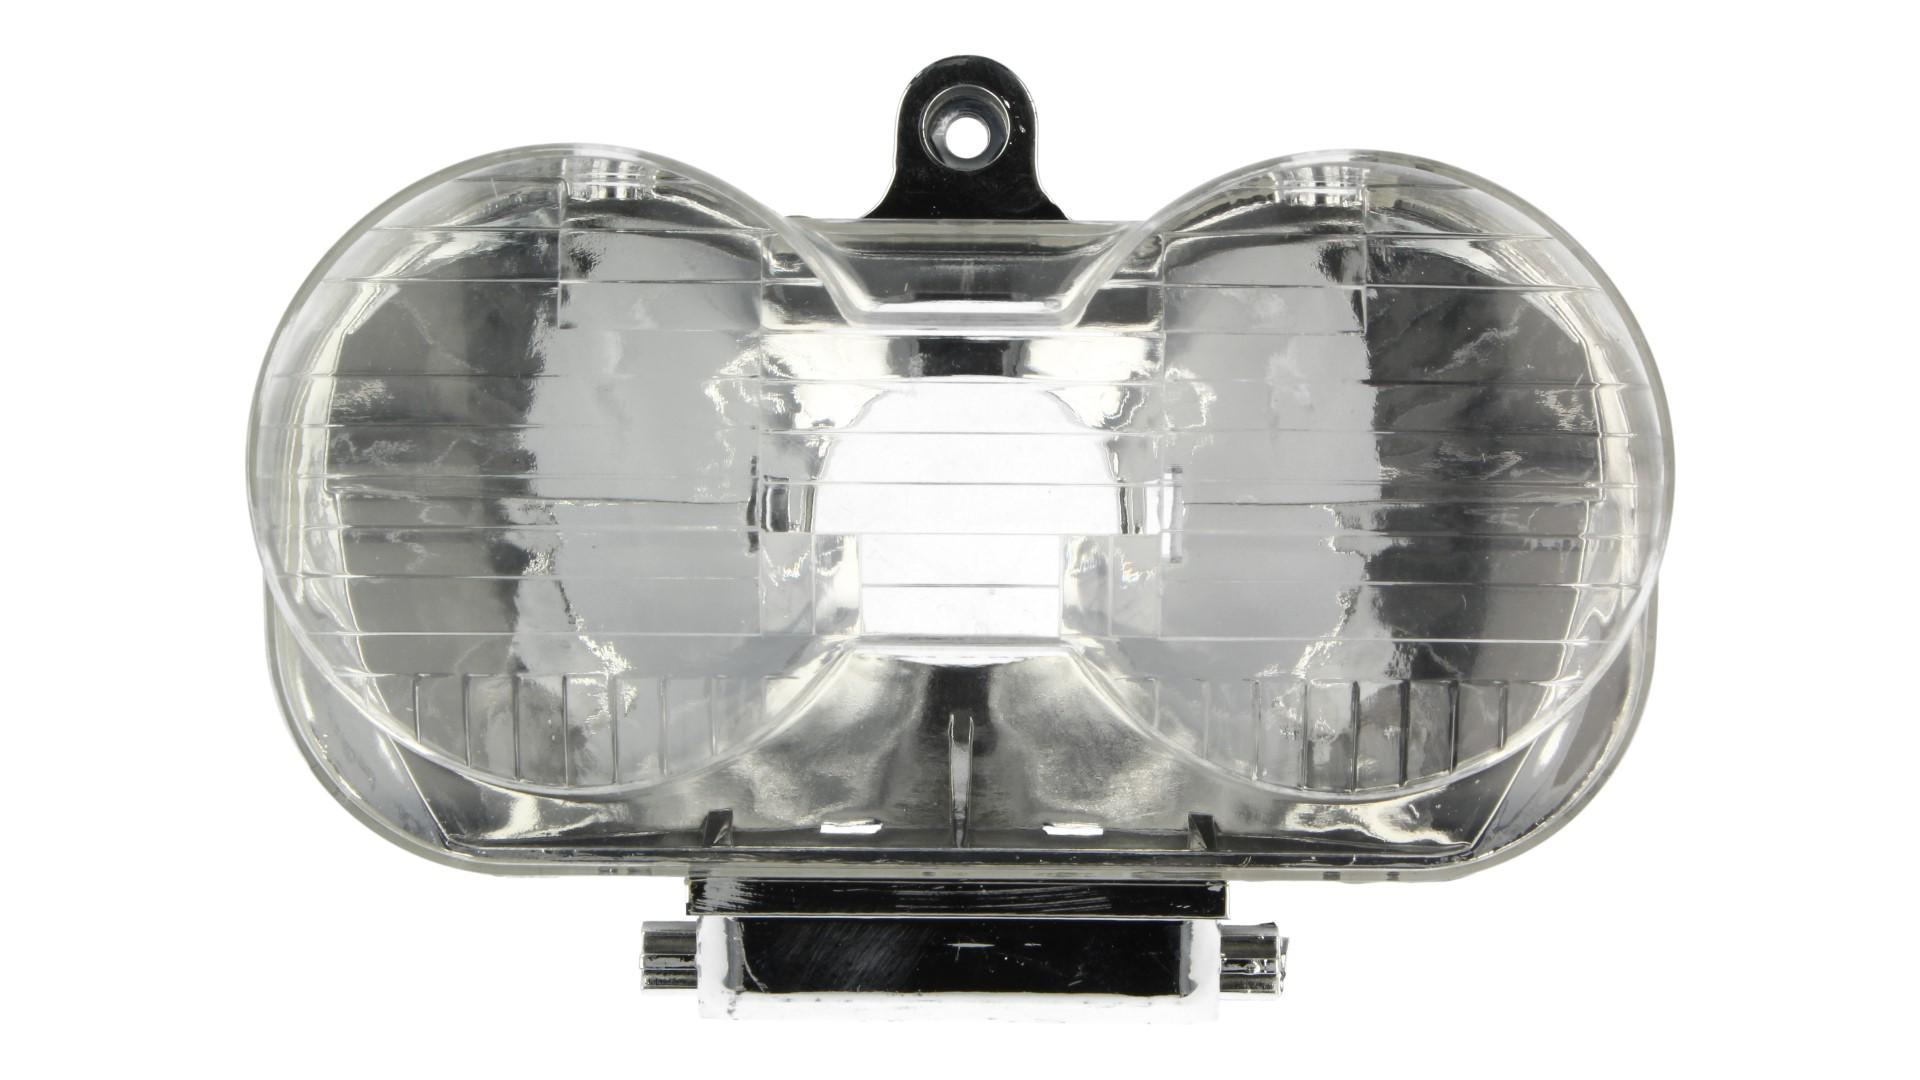 Diffusing Lens, headlight 24 641 0020 at a discount — buy now!